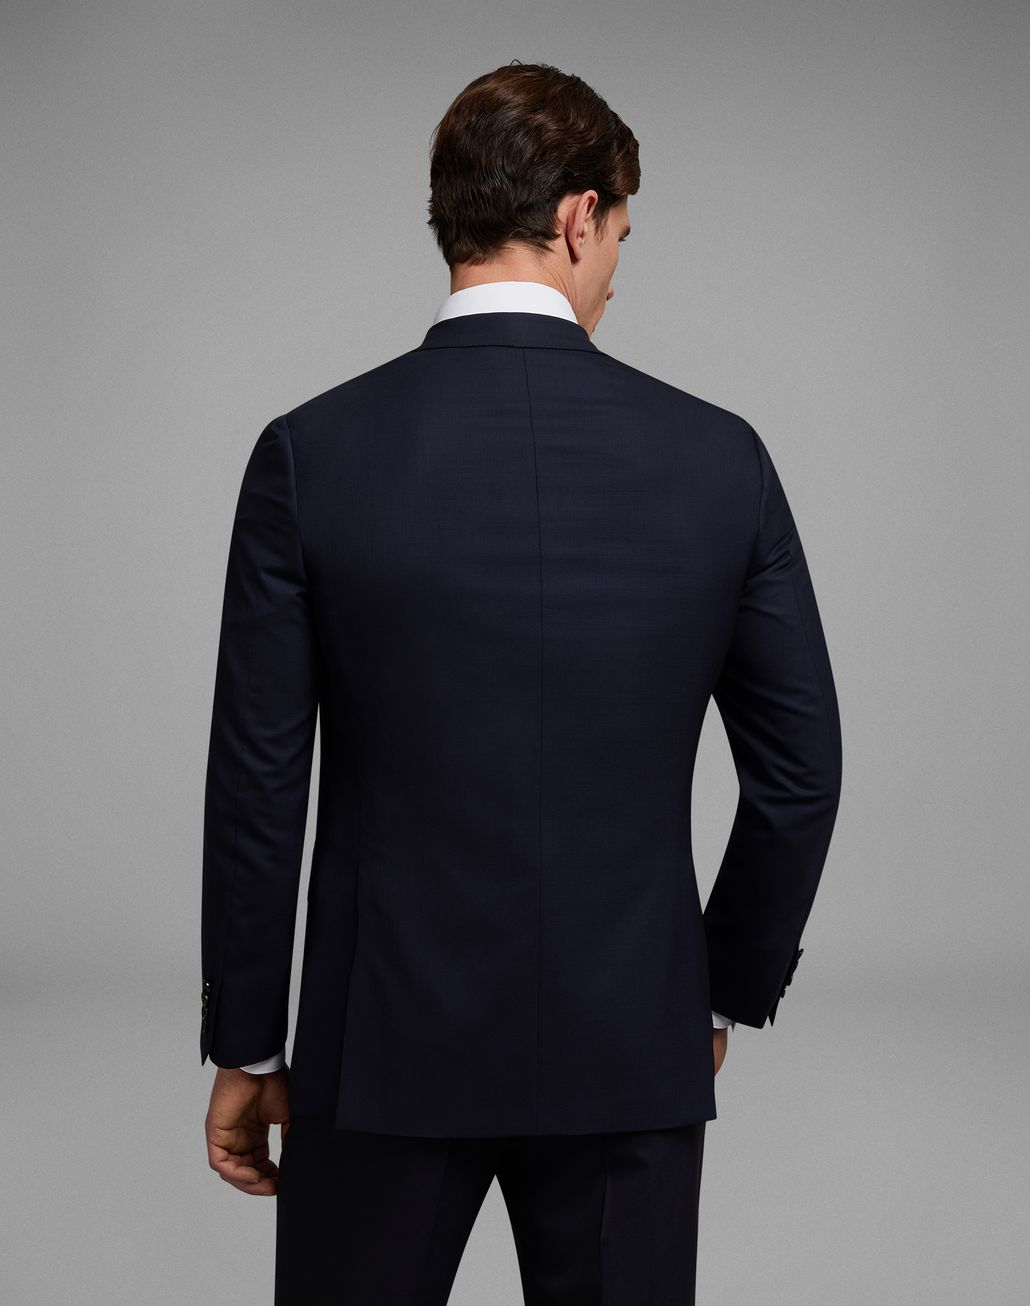 BRIONI 'Essential' Navy Blue Ravello Jacket Jackets [*** pickupInStoreShippingNotGuaranteed_info ***] d